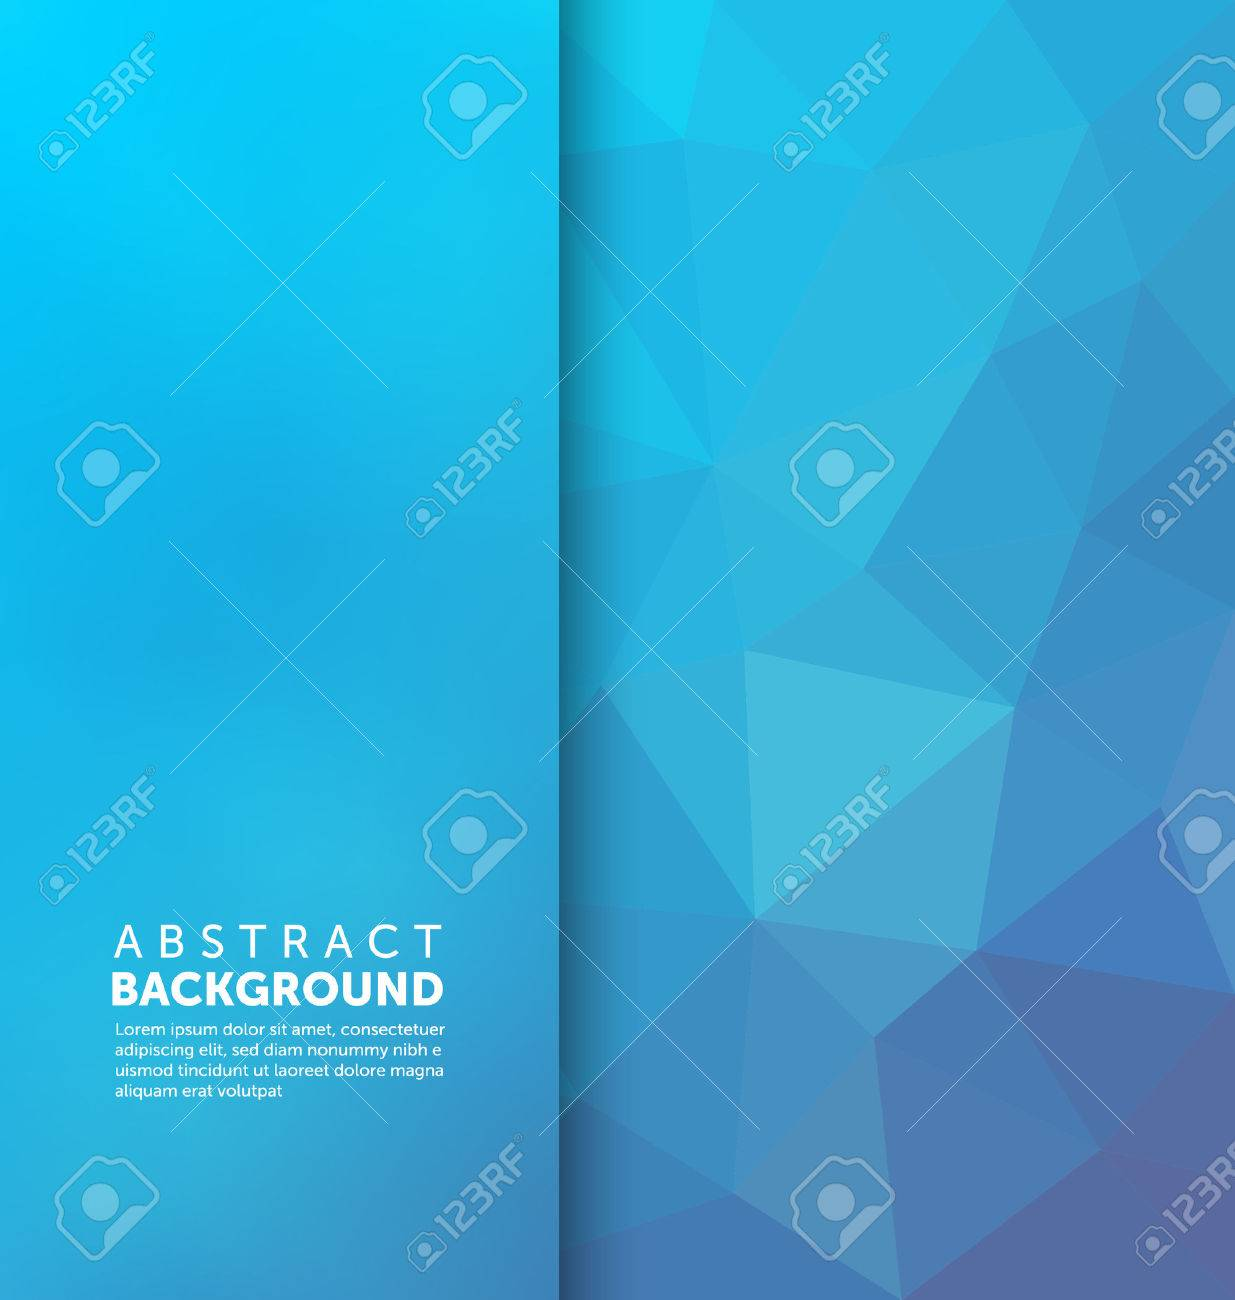 Abstract Background - Triangle and blurred banner design - 45168538